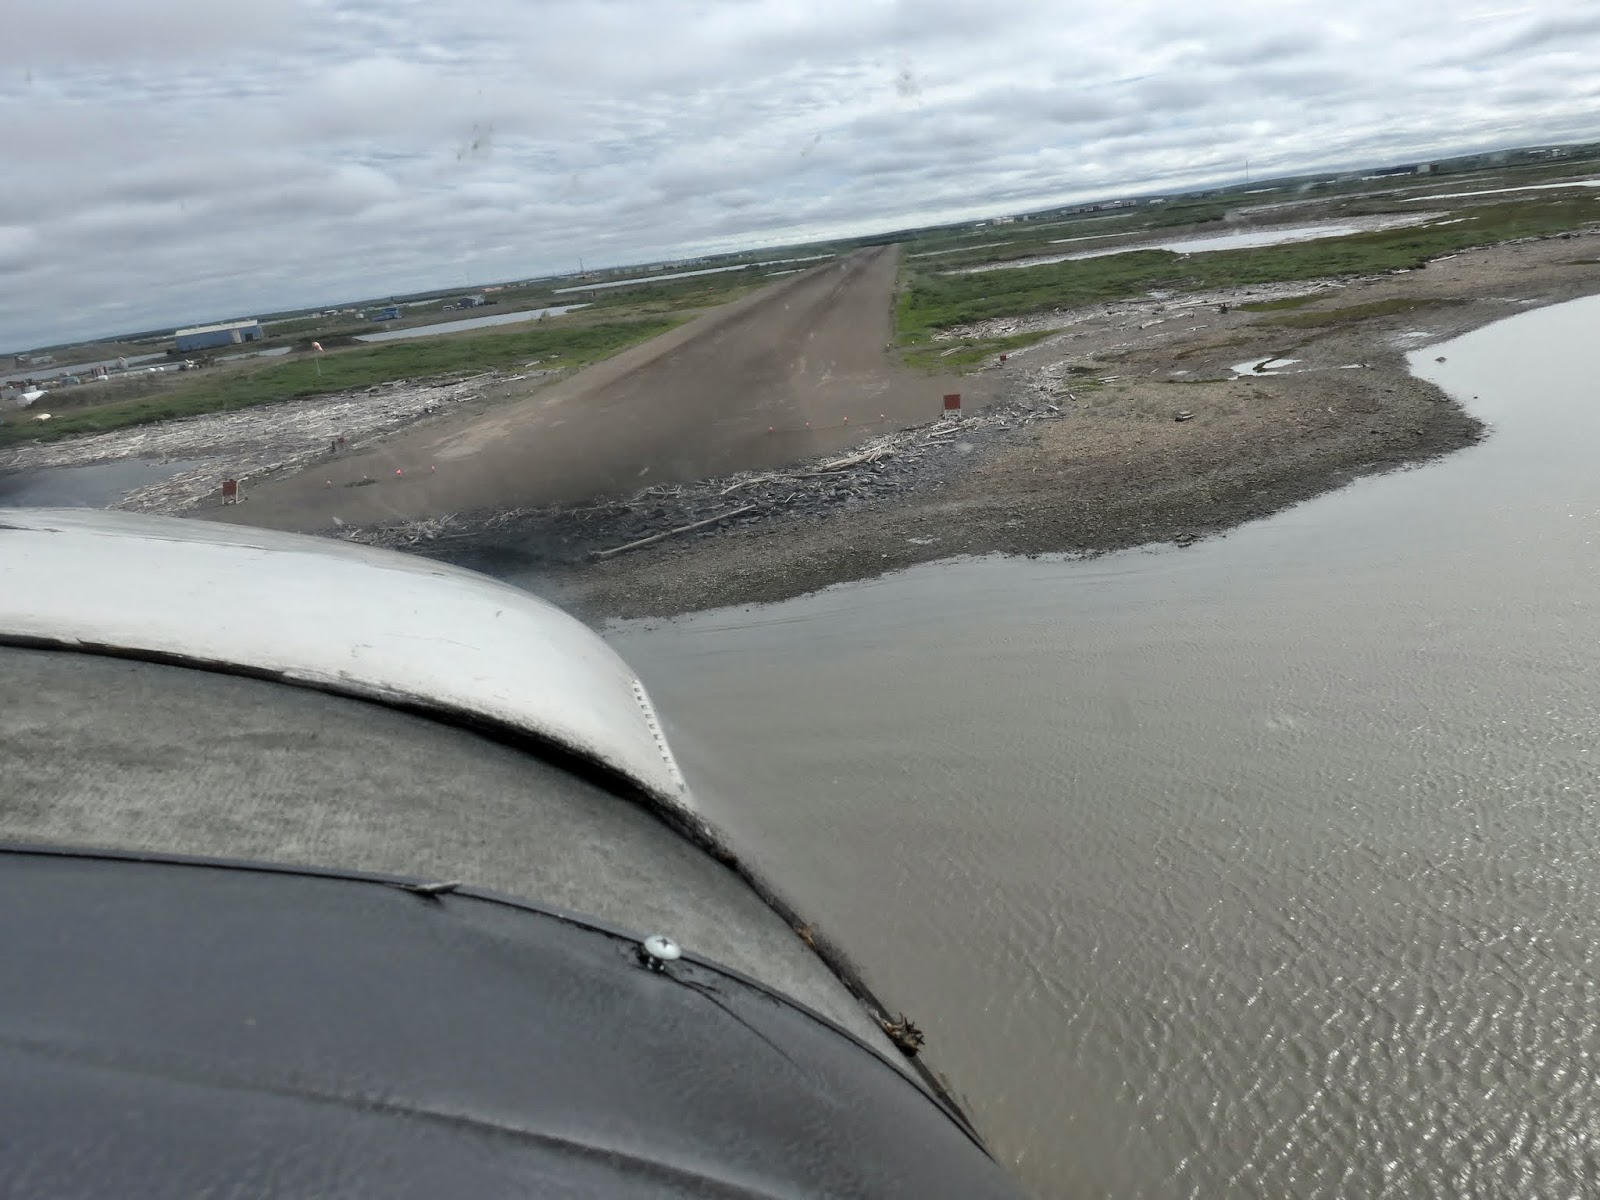 Coming in for landing in Tuk